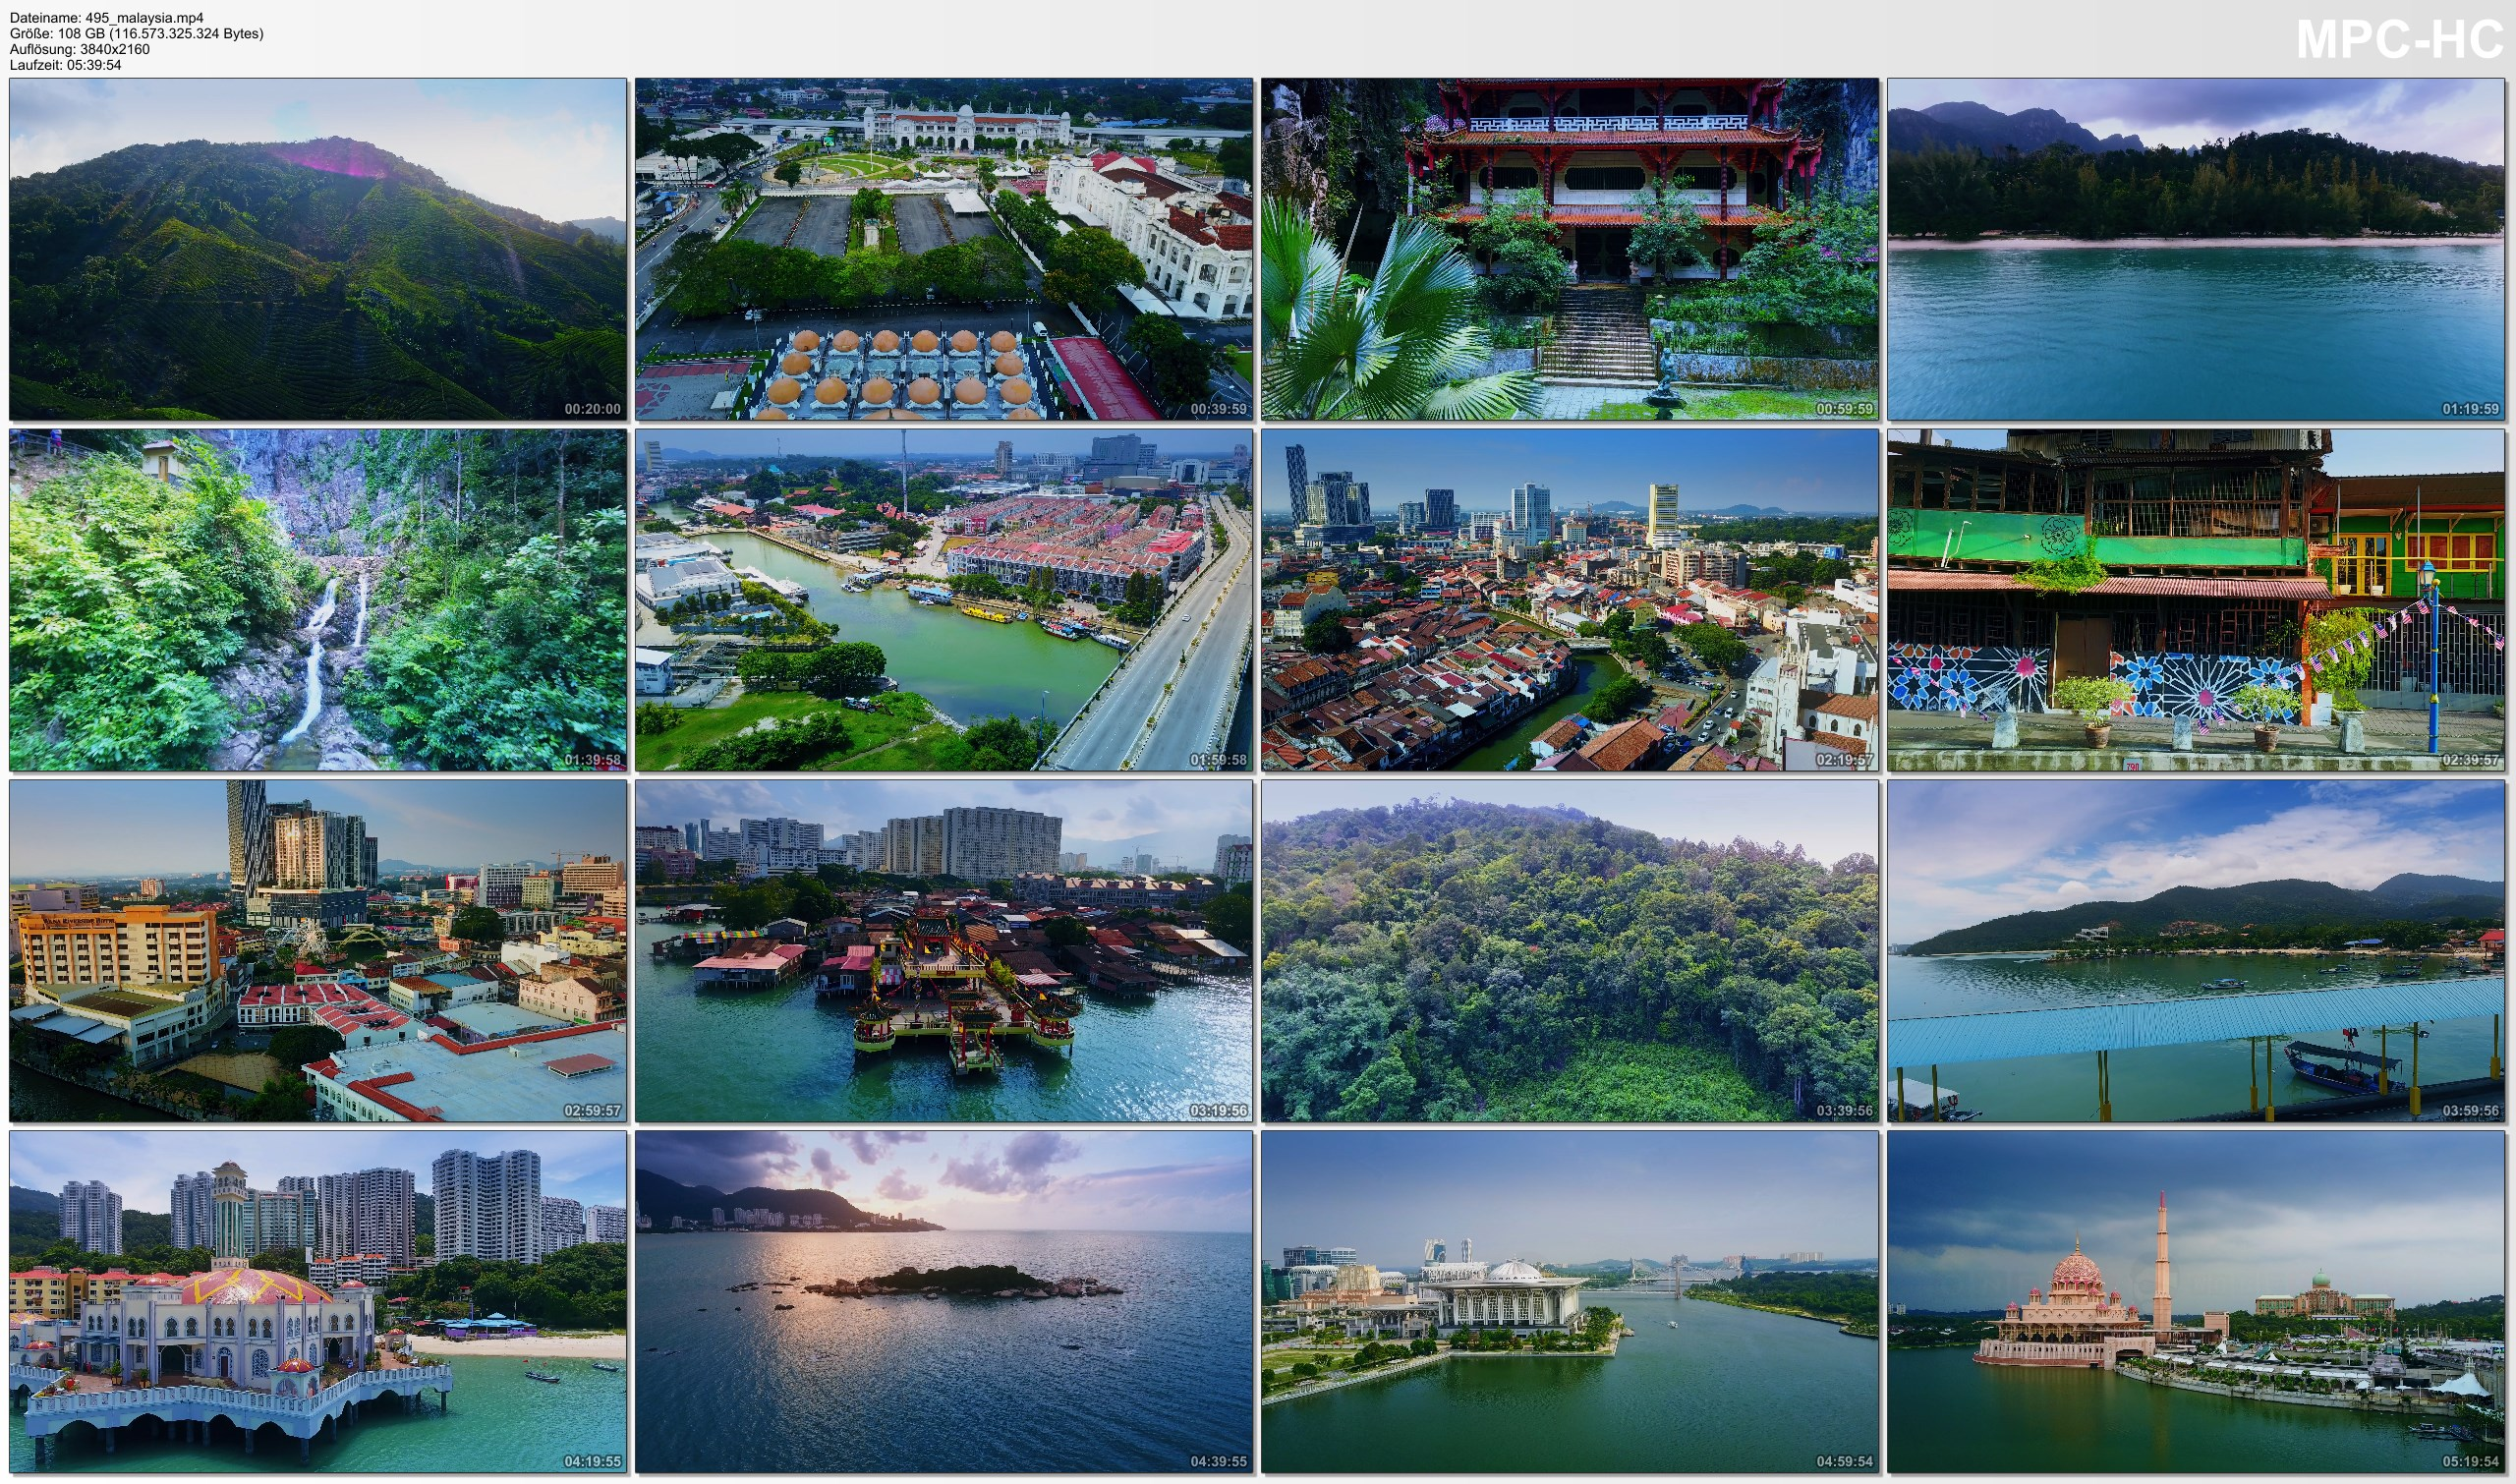 Drone Pictures from Video 【4K】Drone RAW Footage   This is MALAYSIA 2020   Penang   Langkawi   Putrajaya   UltraHD Stock Video